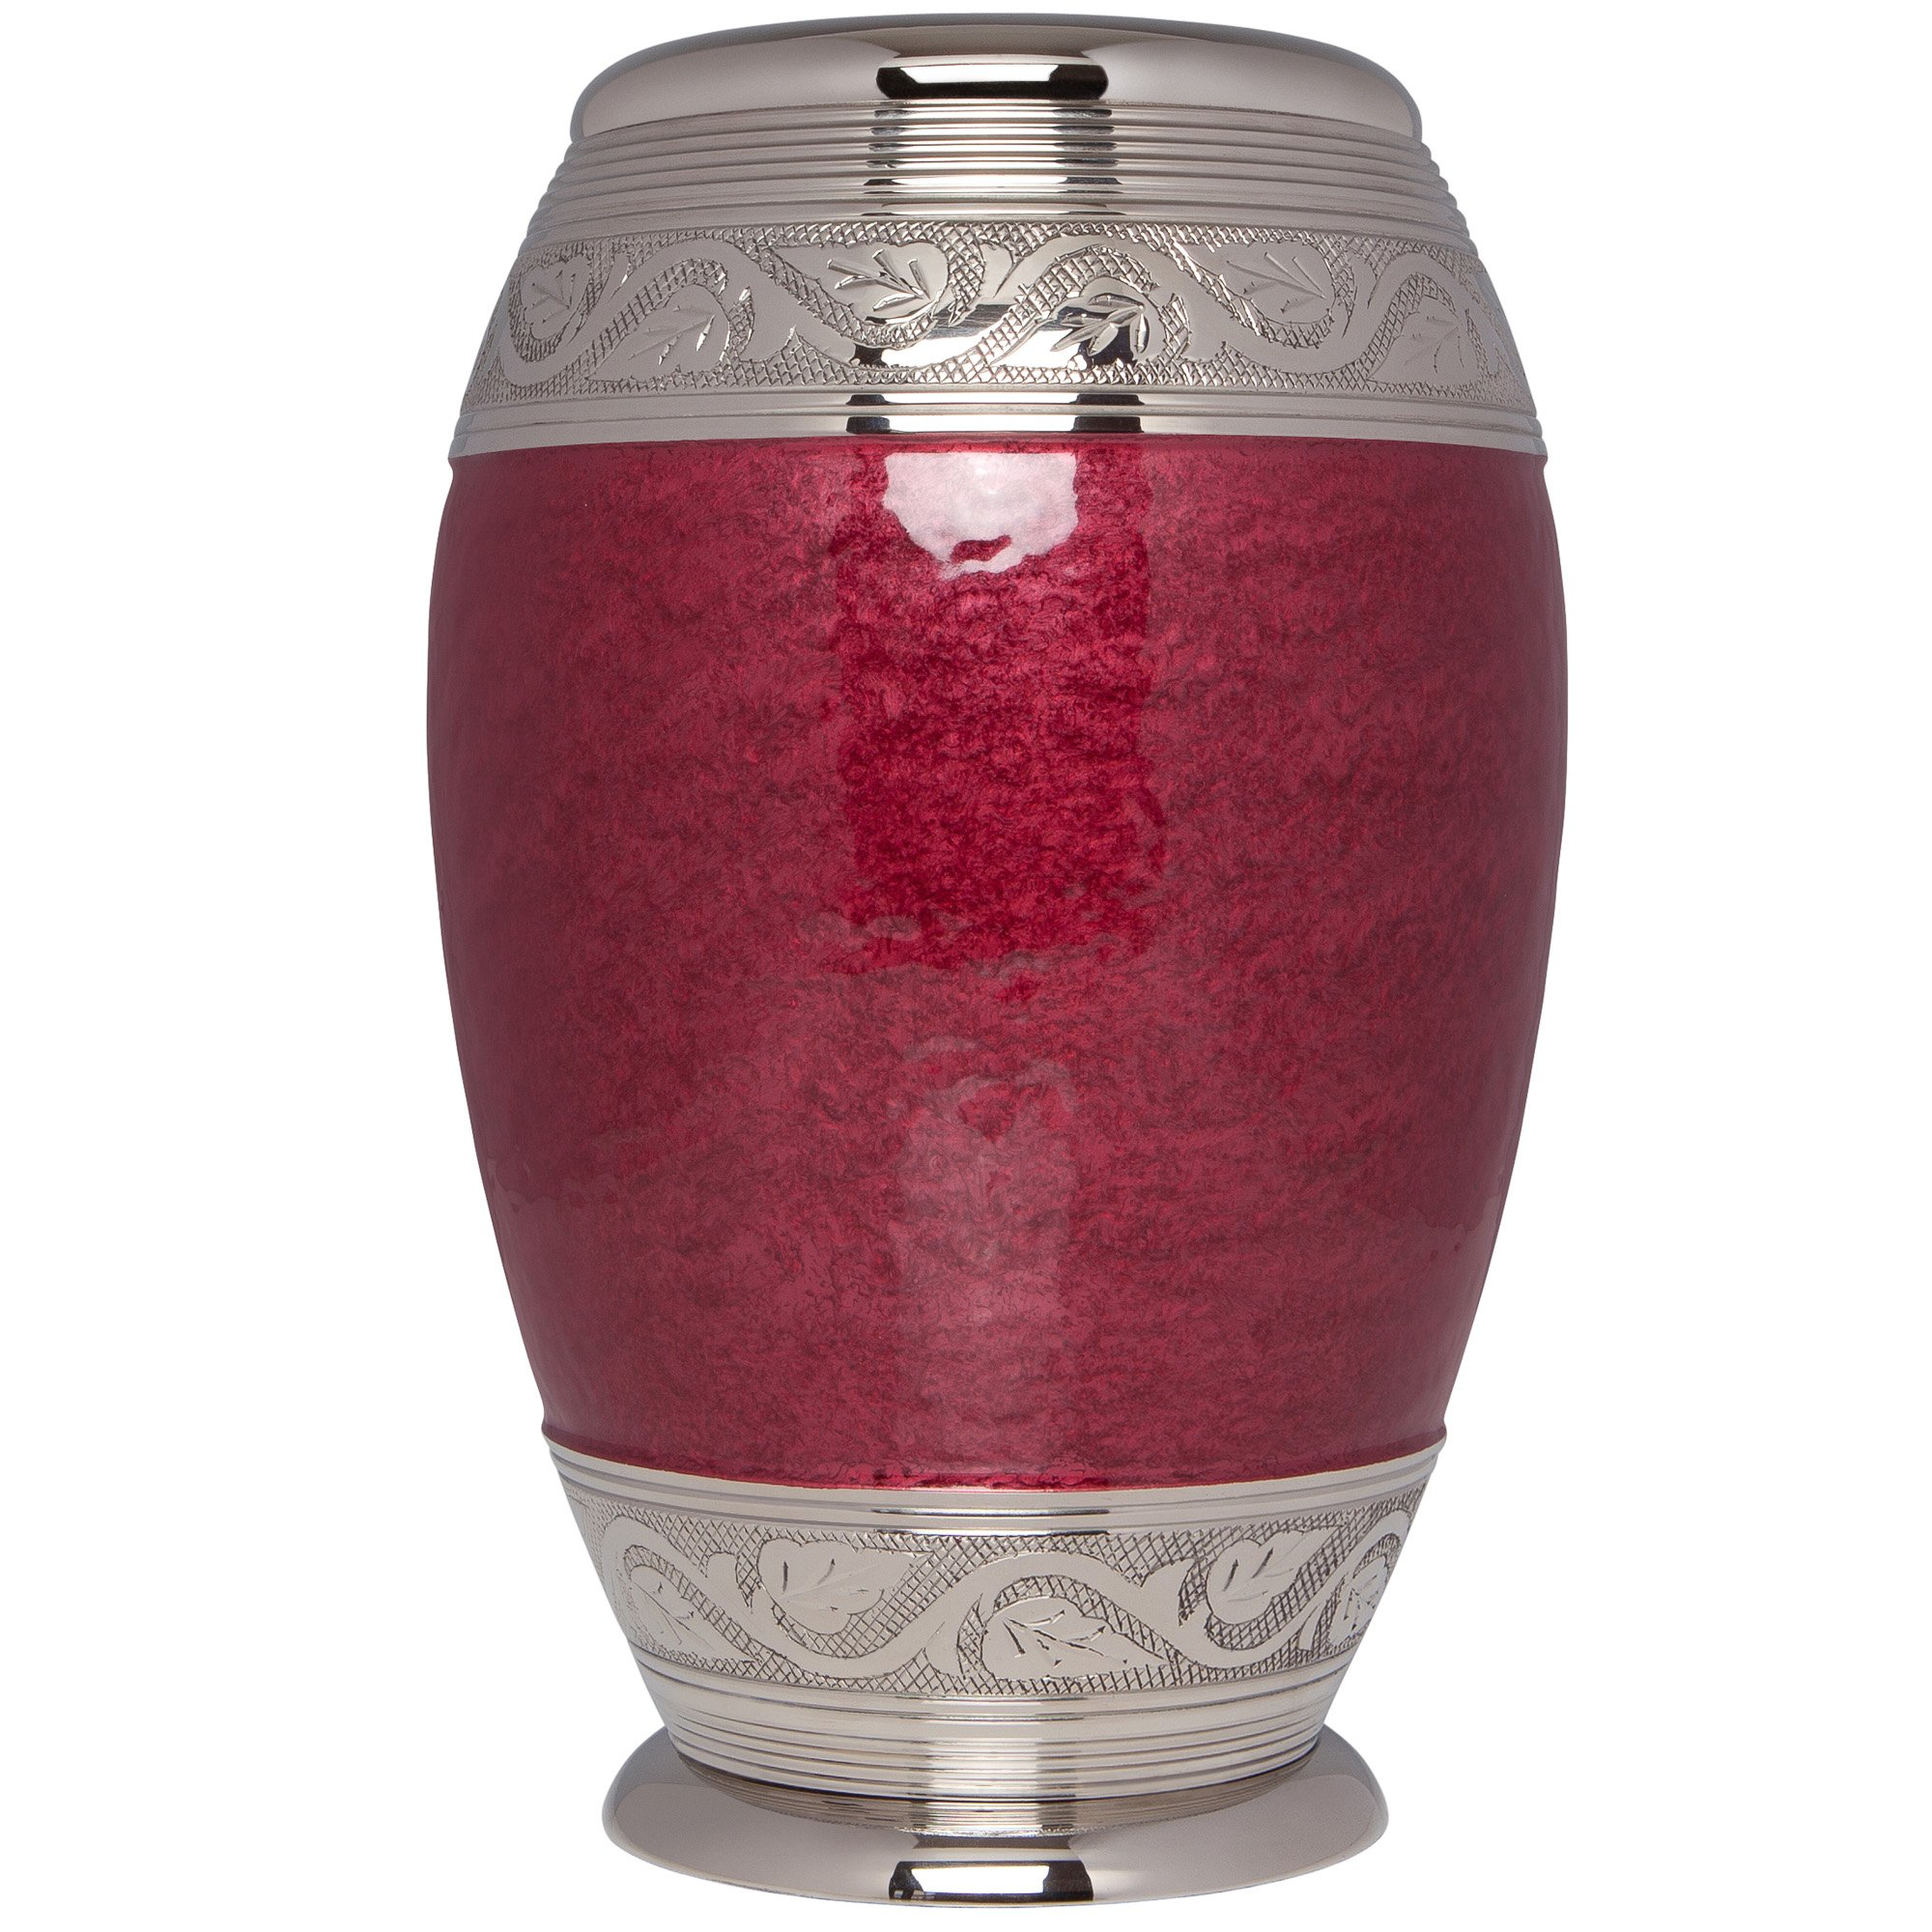 Liliane Memorials Red Funeral Urn by Cremation Urn for Human Ashes - Hand Made in Brass - Suitable for Cemetery Burial or Niche - Large Size fits remains of Adults up to 200 lbs - Laurel Model